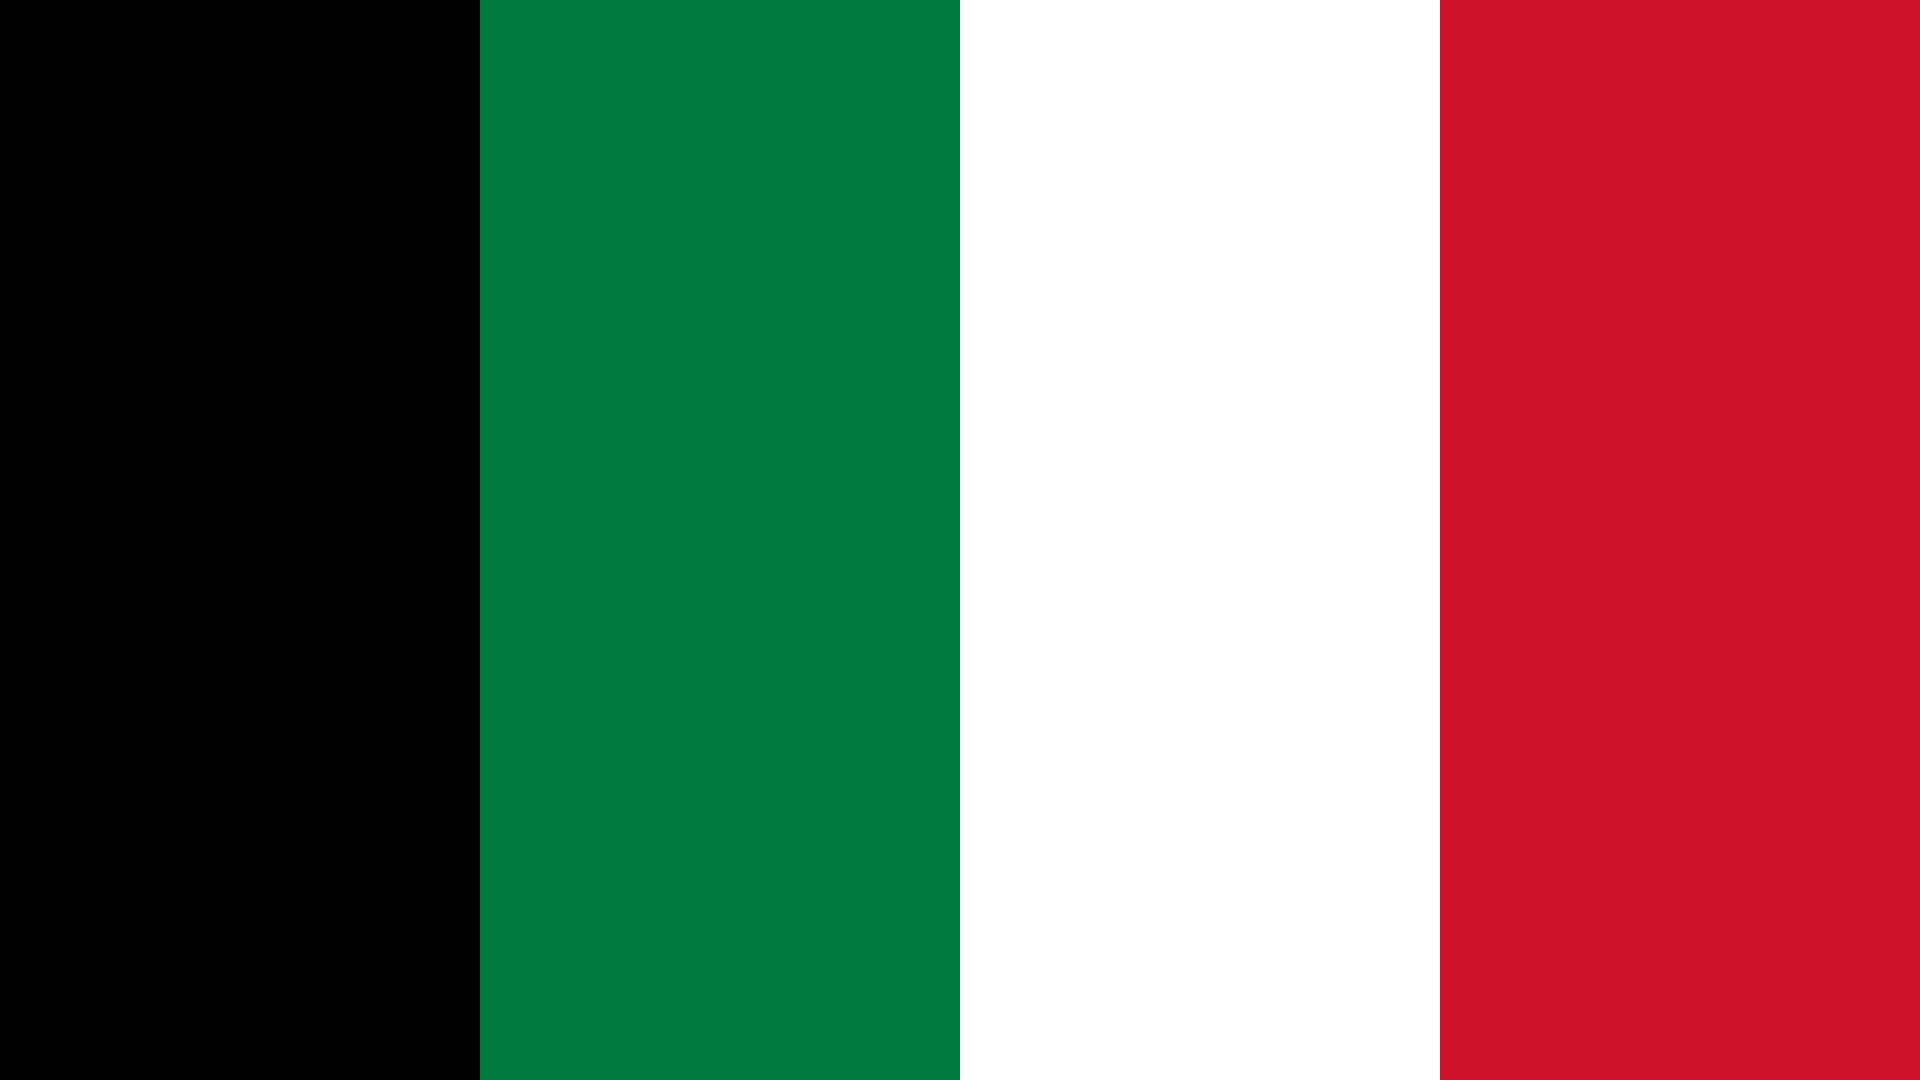 Kuwait Flag Colors